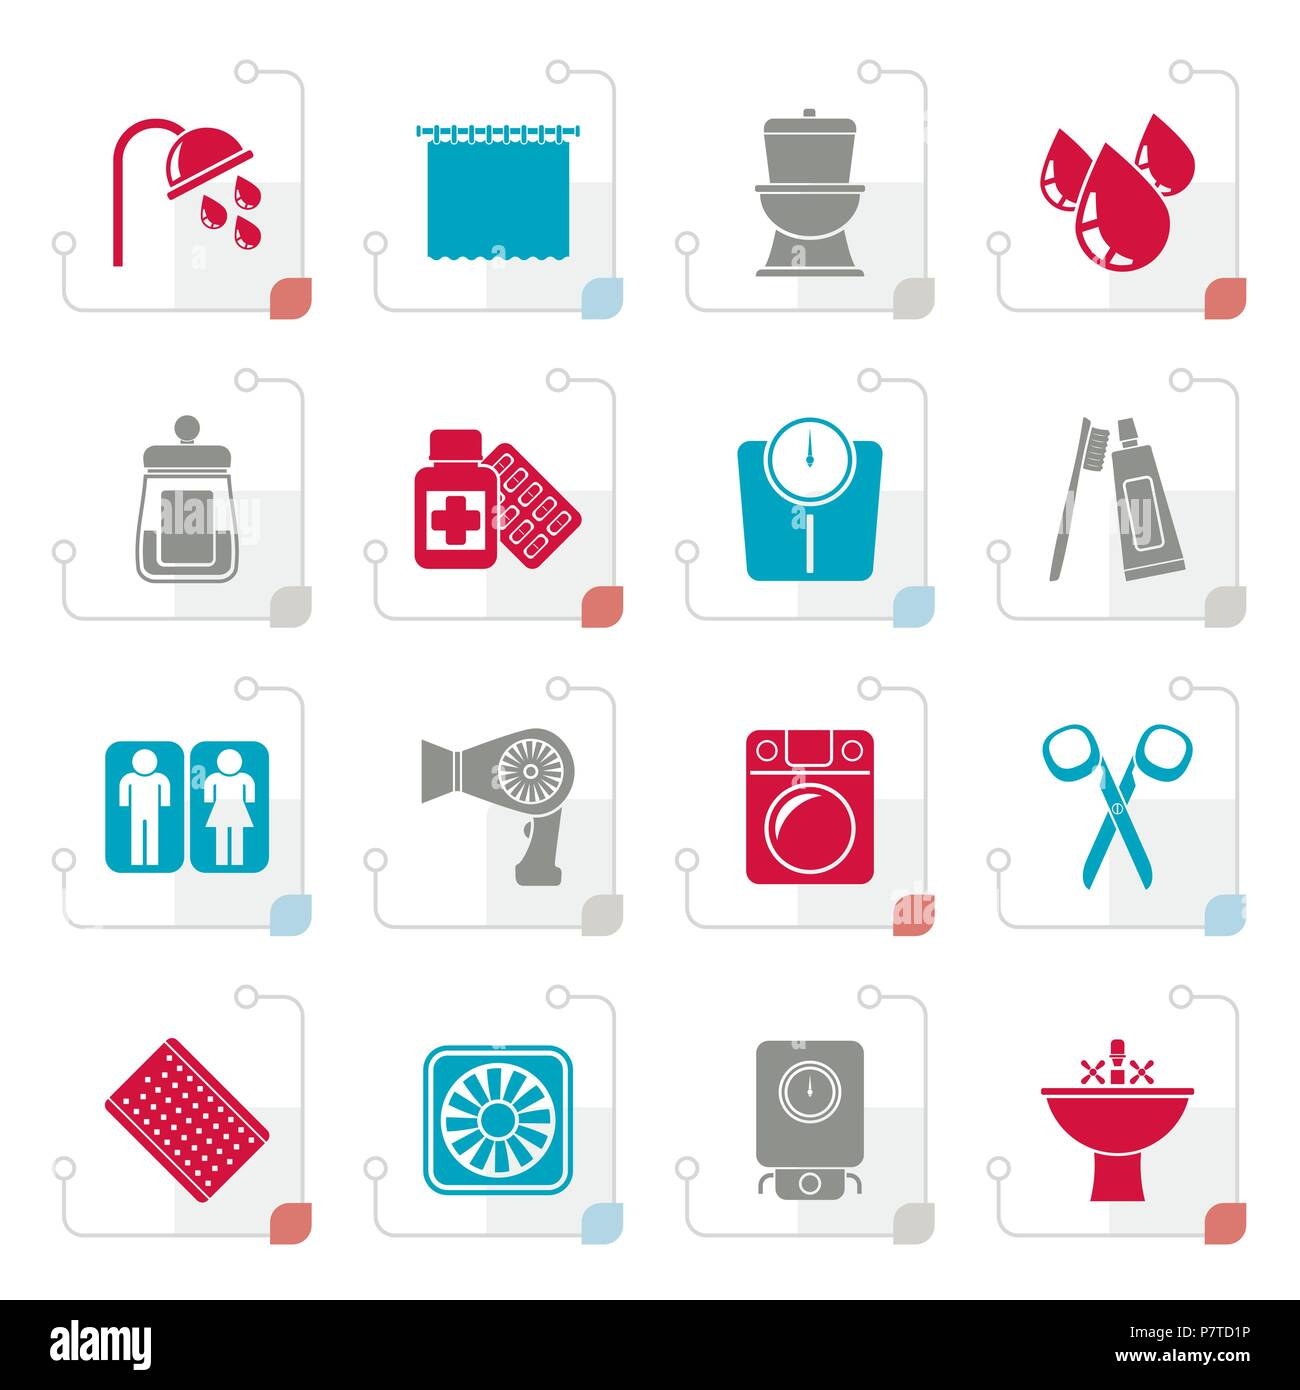 Stylized Bathroom and Personal Care icons- vector icon set 2 - Stock Image